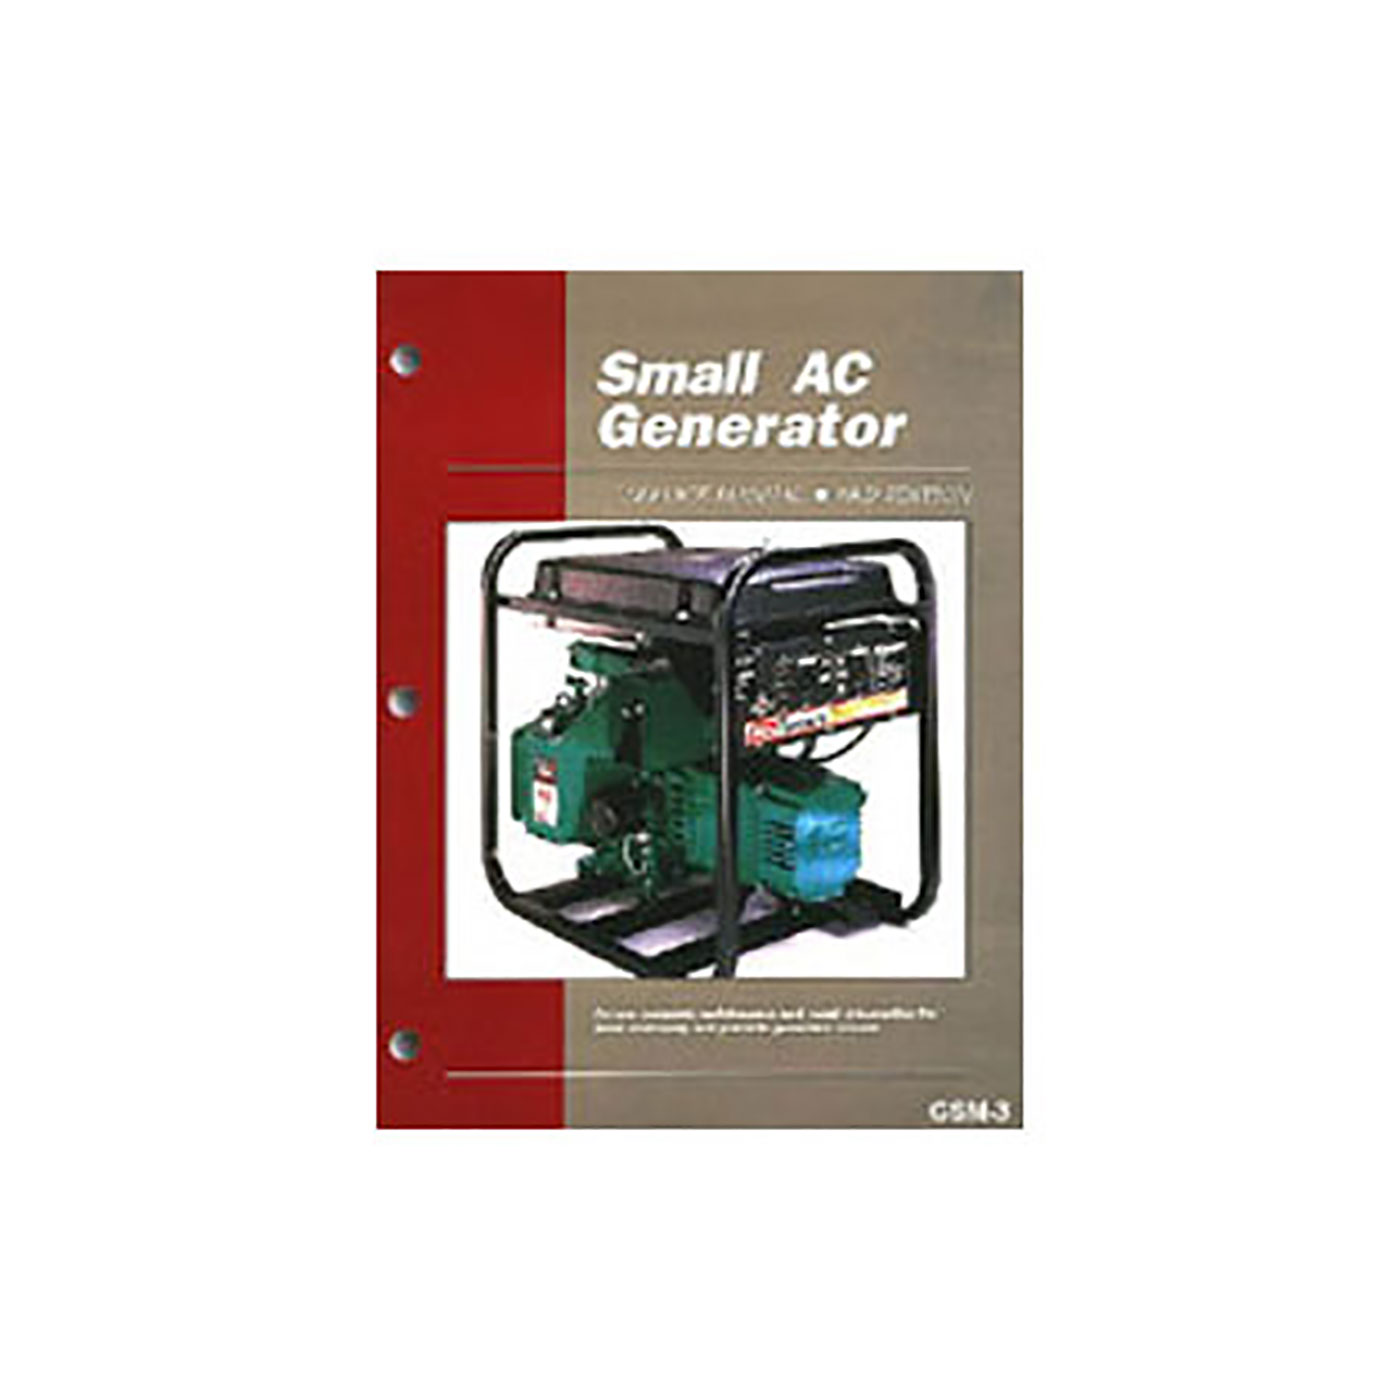 Small AC Generator Maintenance & Repair Manual